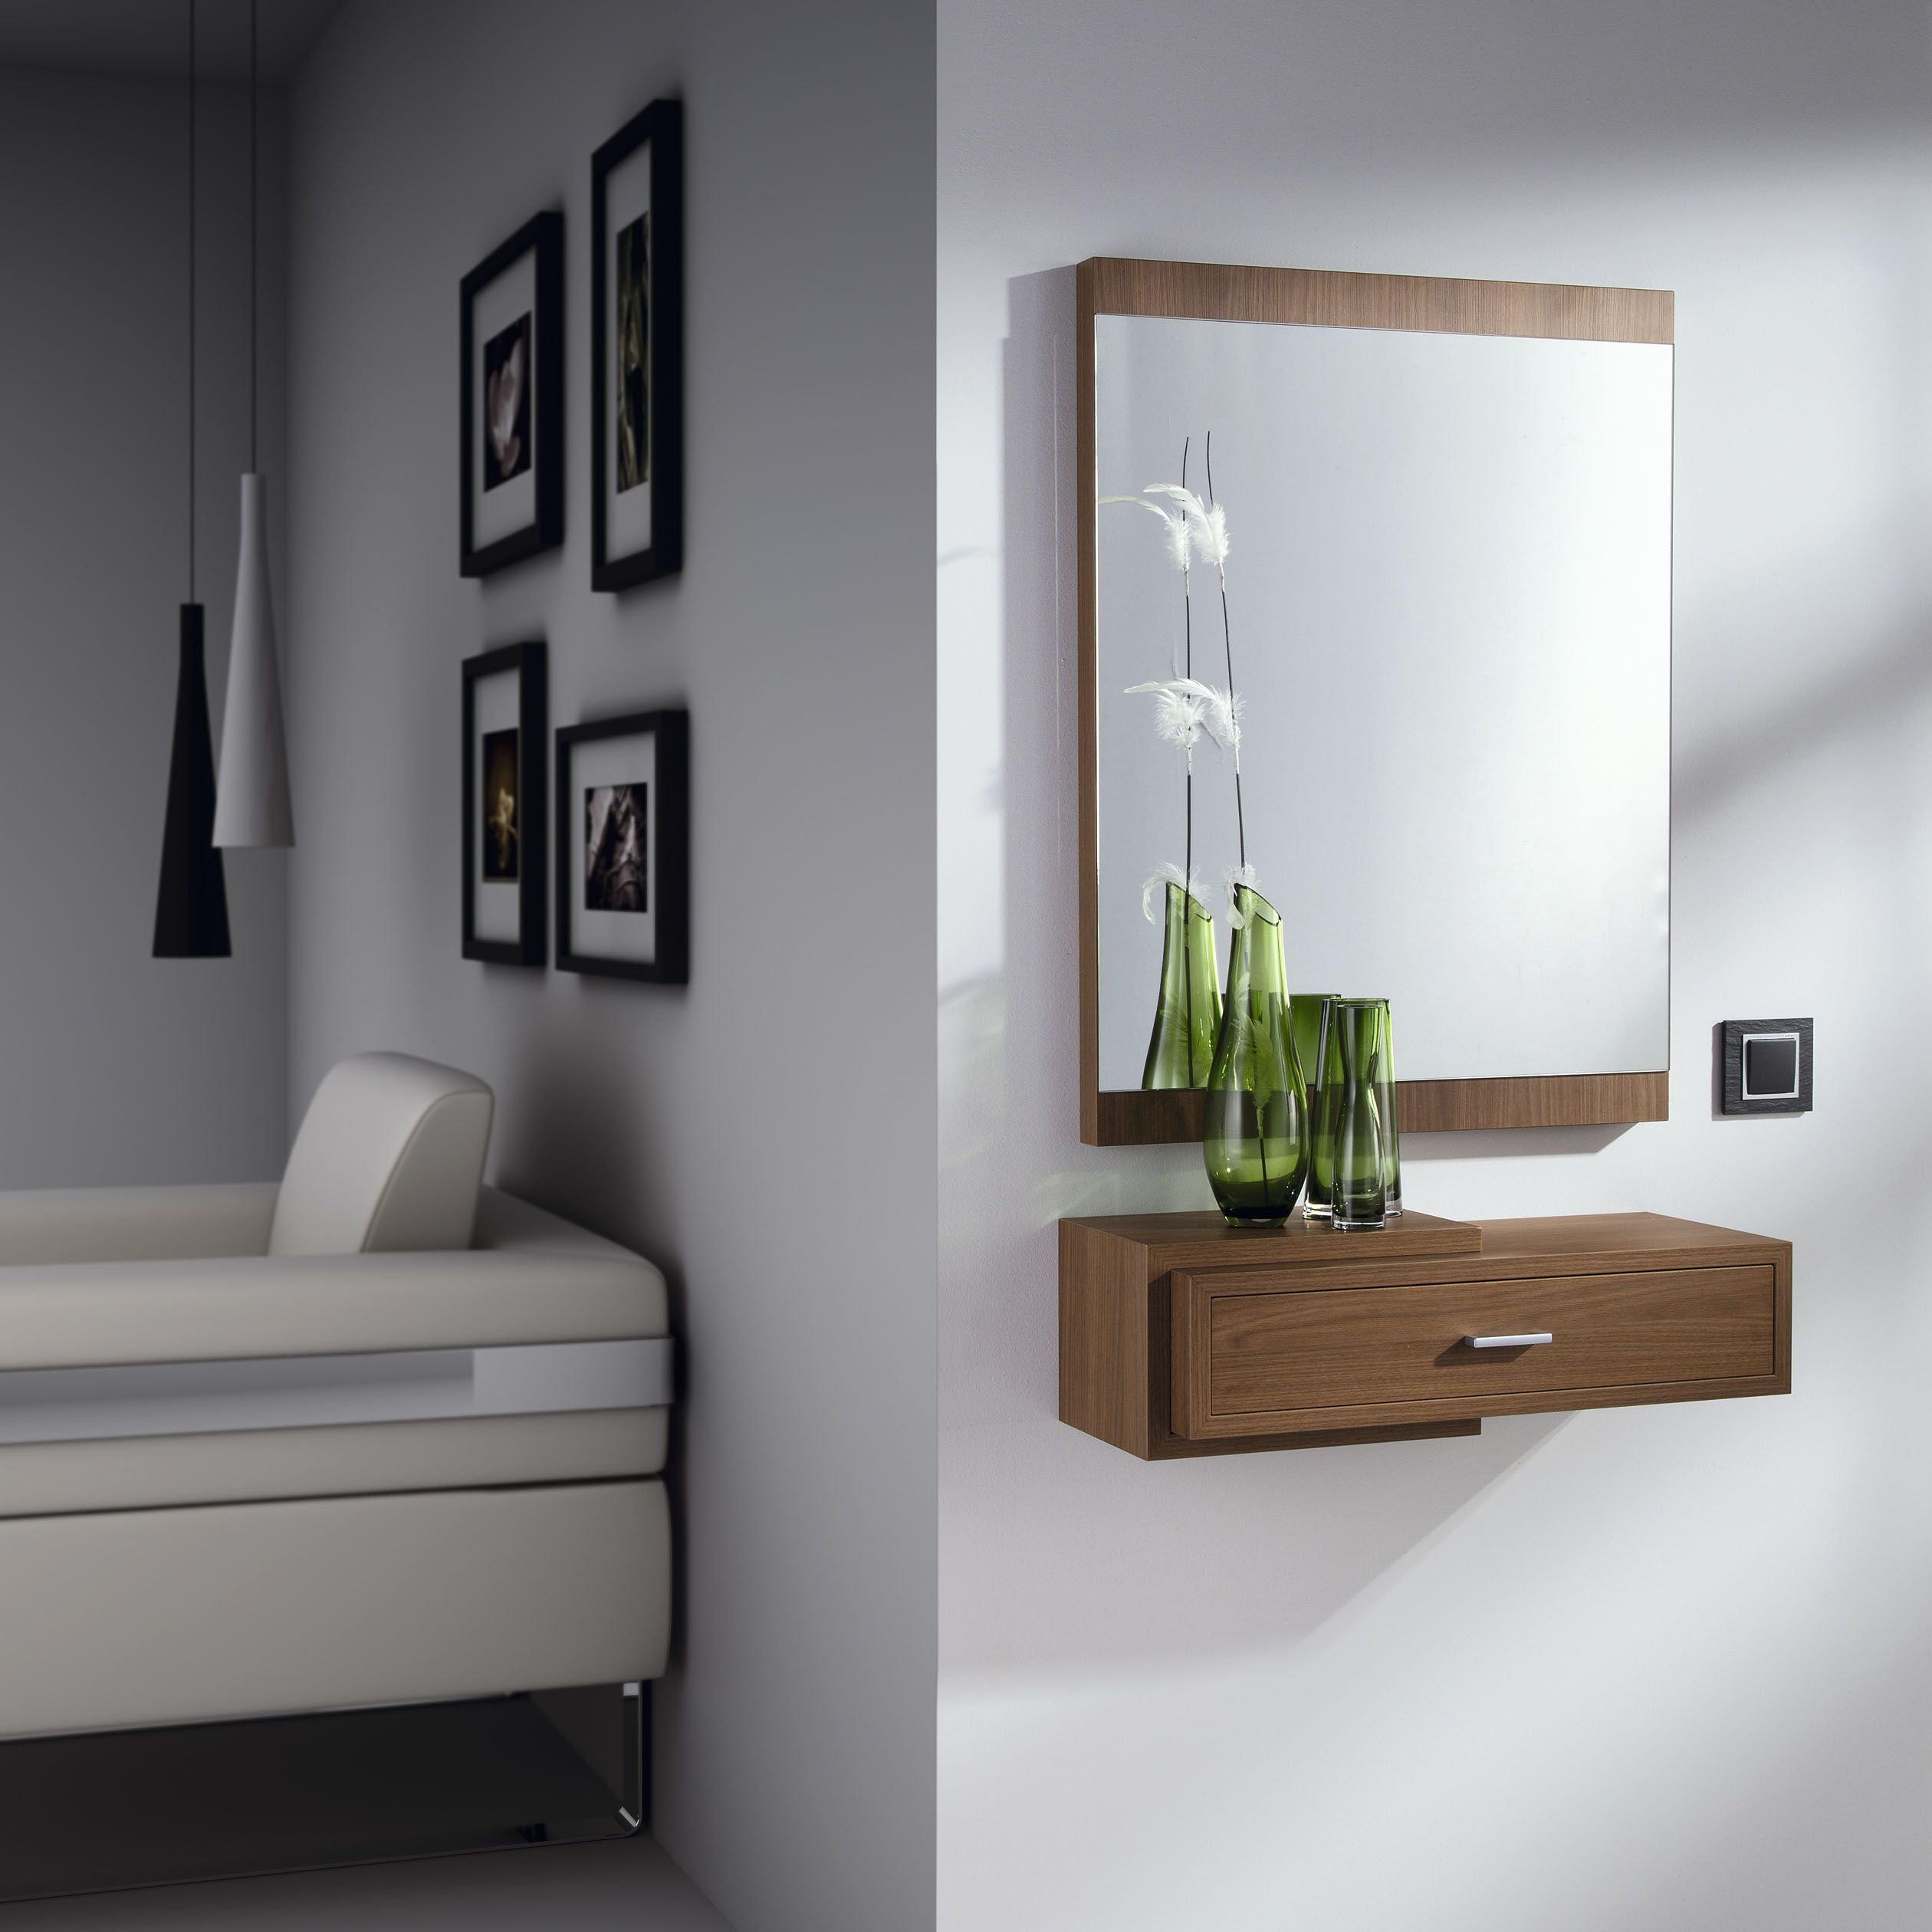 15 Hair Raising Modern Wall Mirror Texture Ideas Mirror Wall Bedroom Mirror Wall Living Room Rustic Wall Mirrors